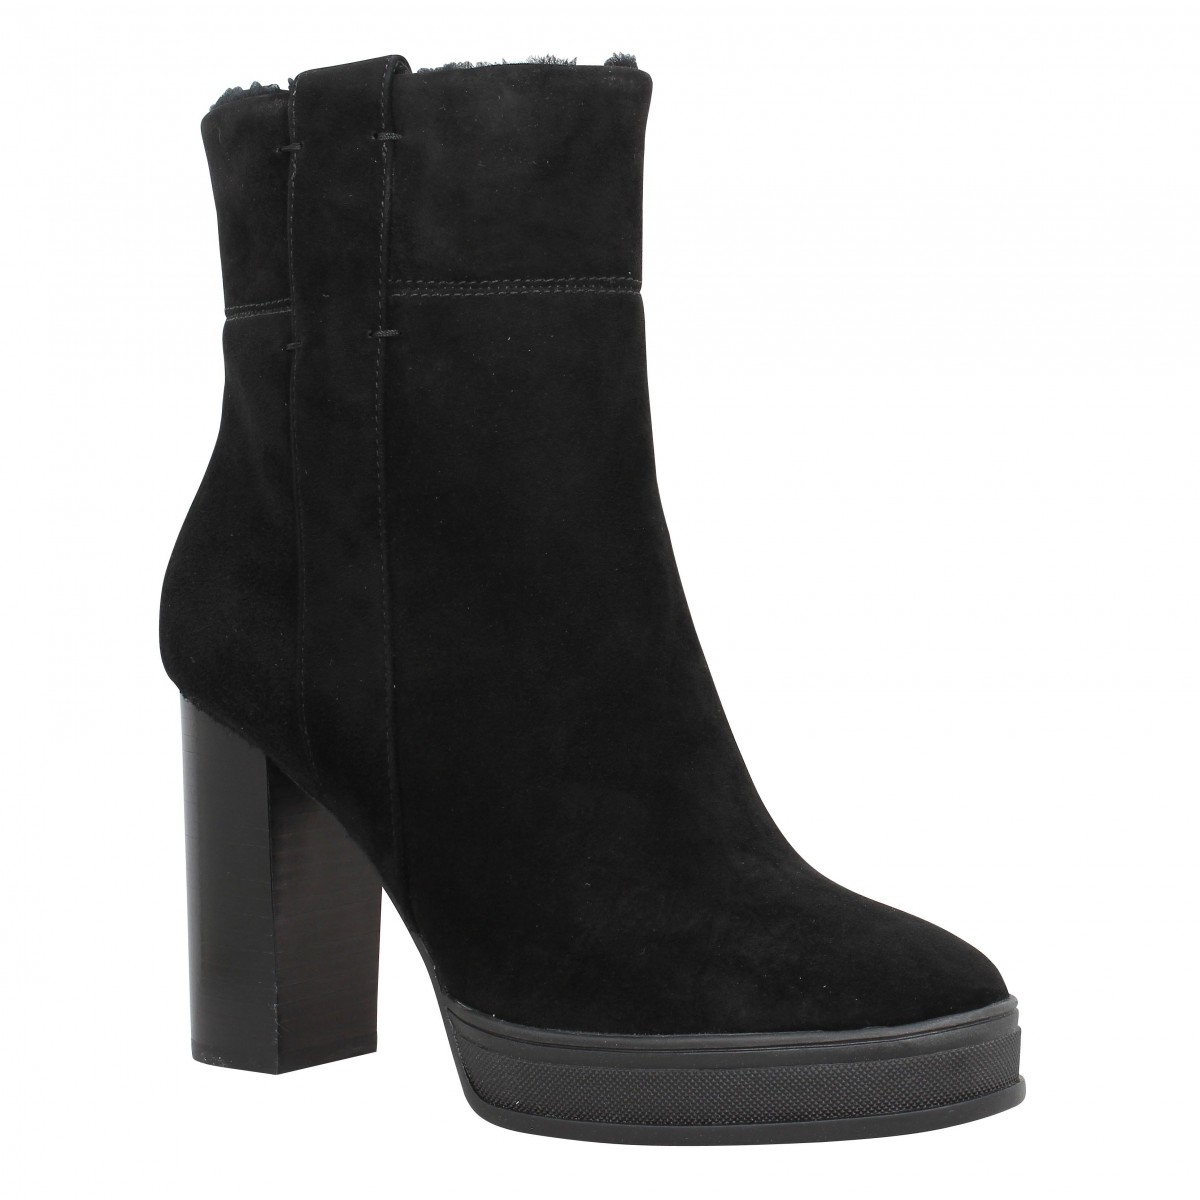 Bottines WHAT FOR 3169 Femme Noir